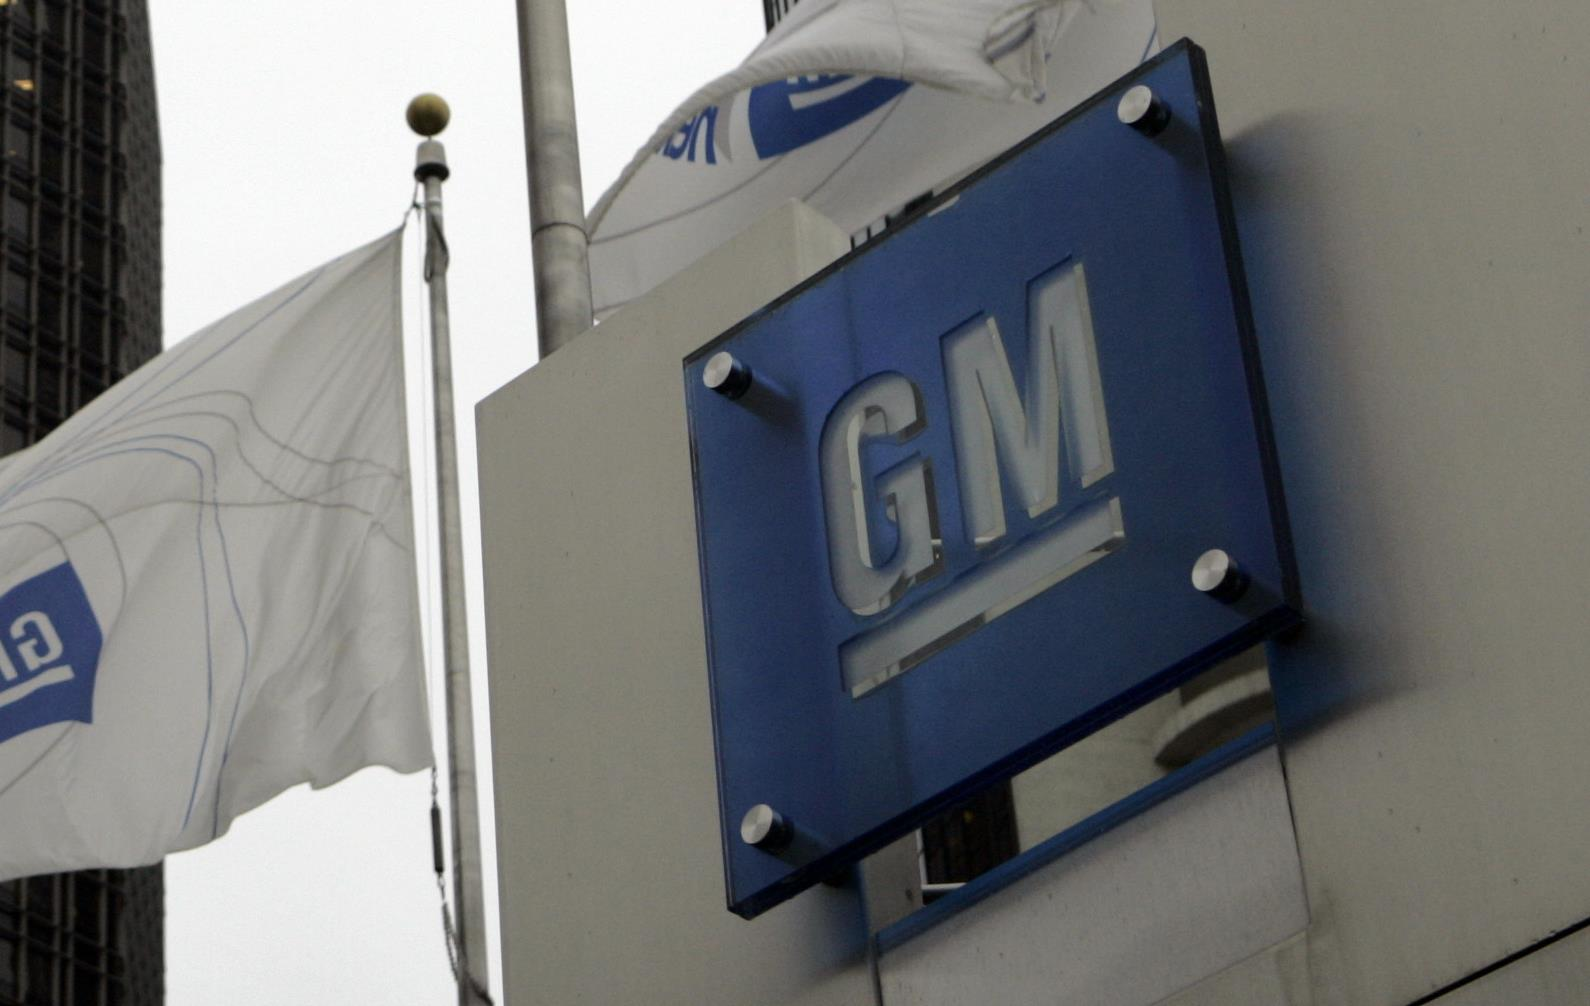 general motors outsourcing essay General motors has sub-brands under its management buick, cadillac, chevrolet, hummer, pontiac, saab, vauxhall, holden, saturn and wuling are some one the names of general motors' brands the general motors company placed into a global market throughout the 1920s.